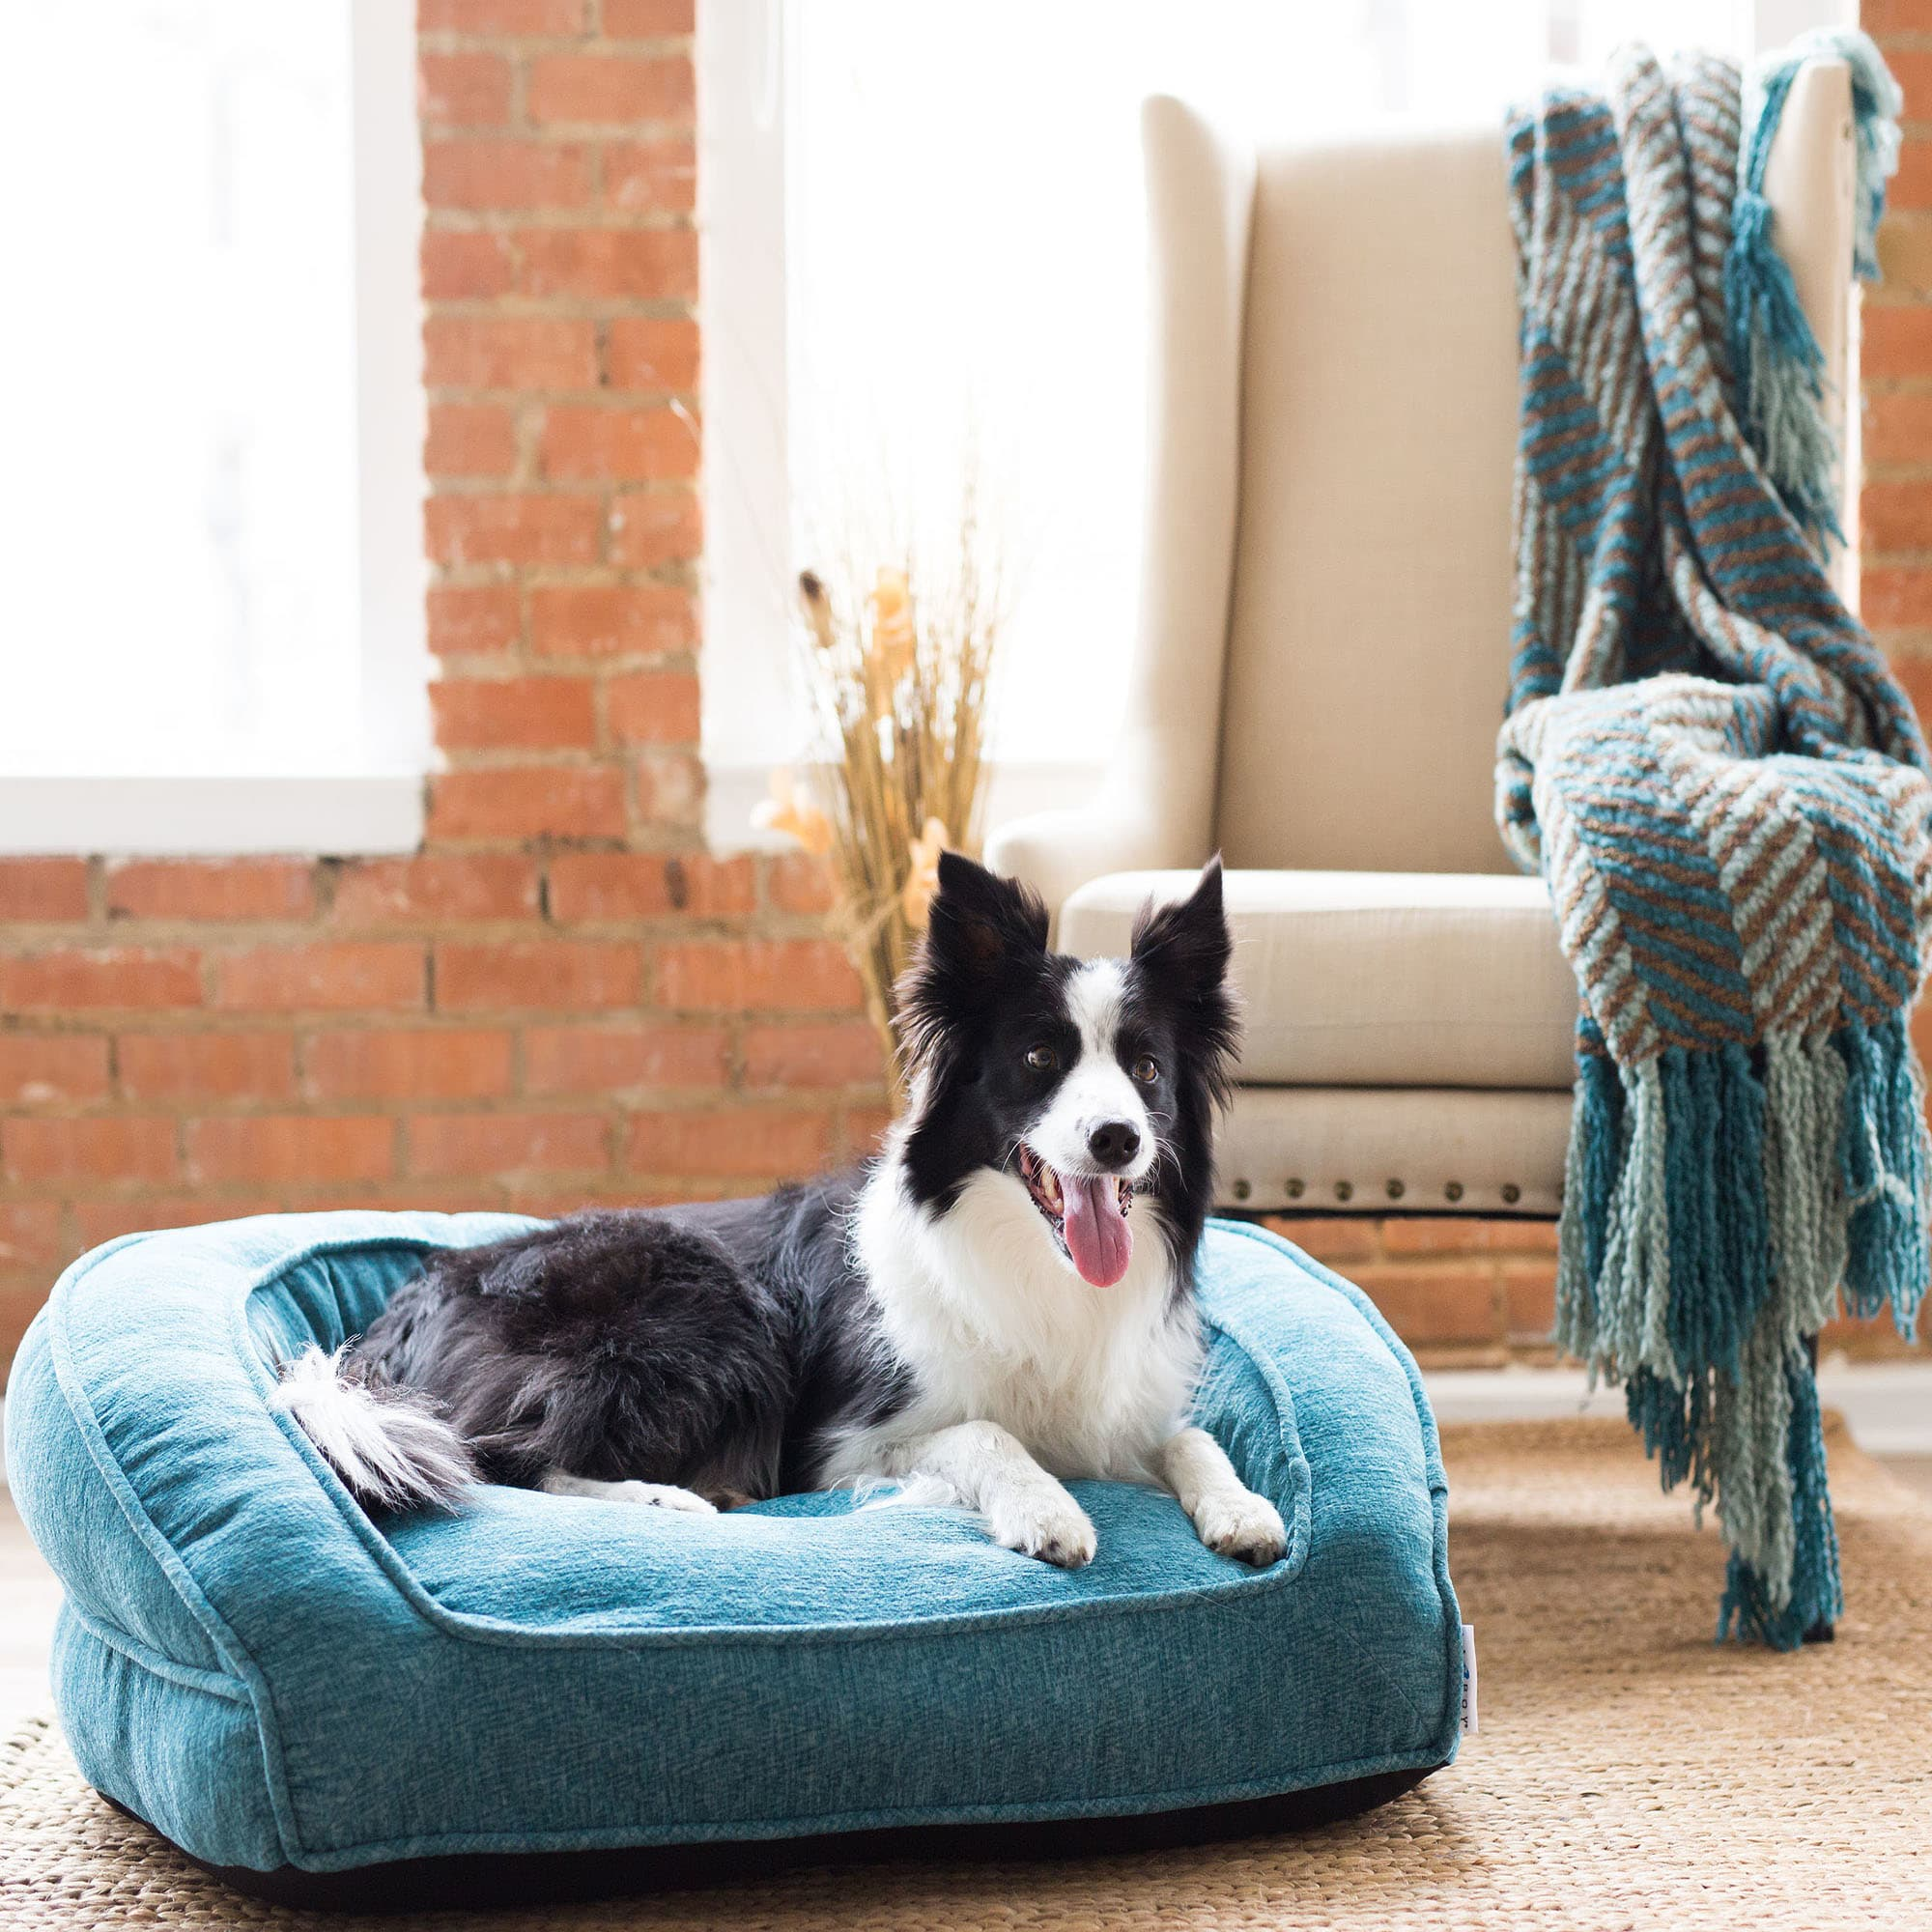 La Z Boy Tucker Sofa Caribbean Pet Bed 33 L X 30 W Petco